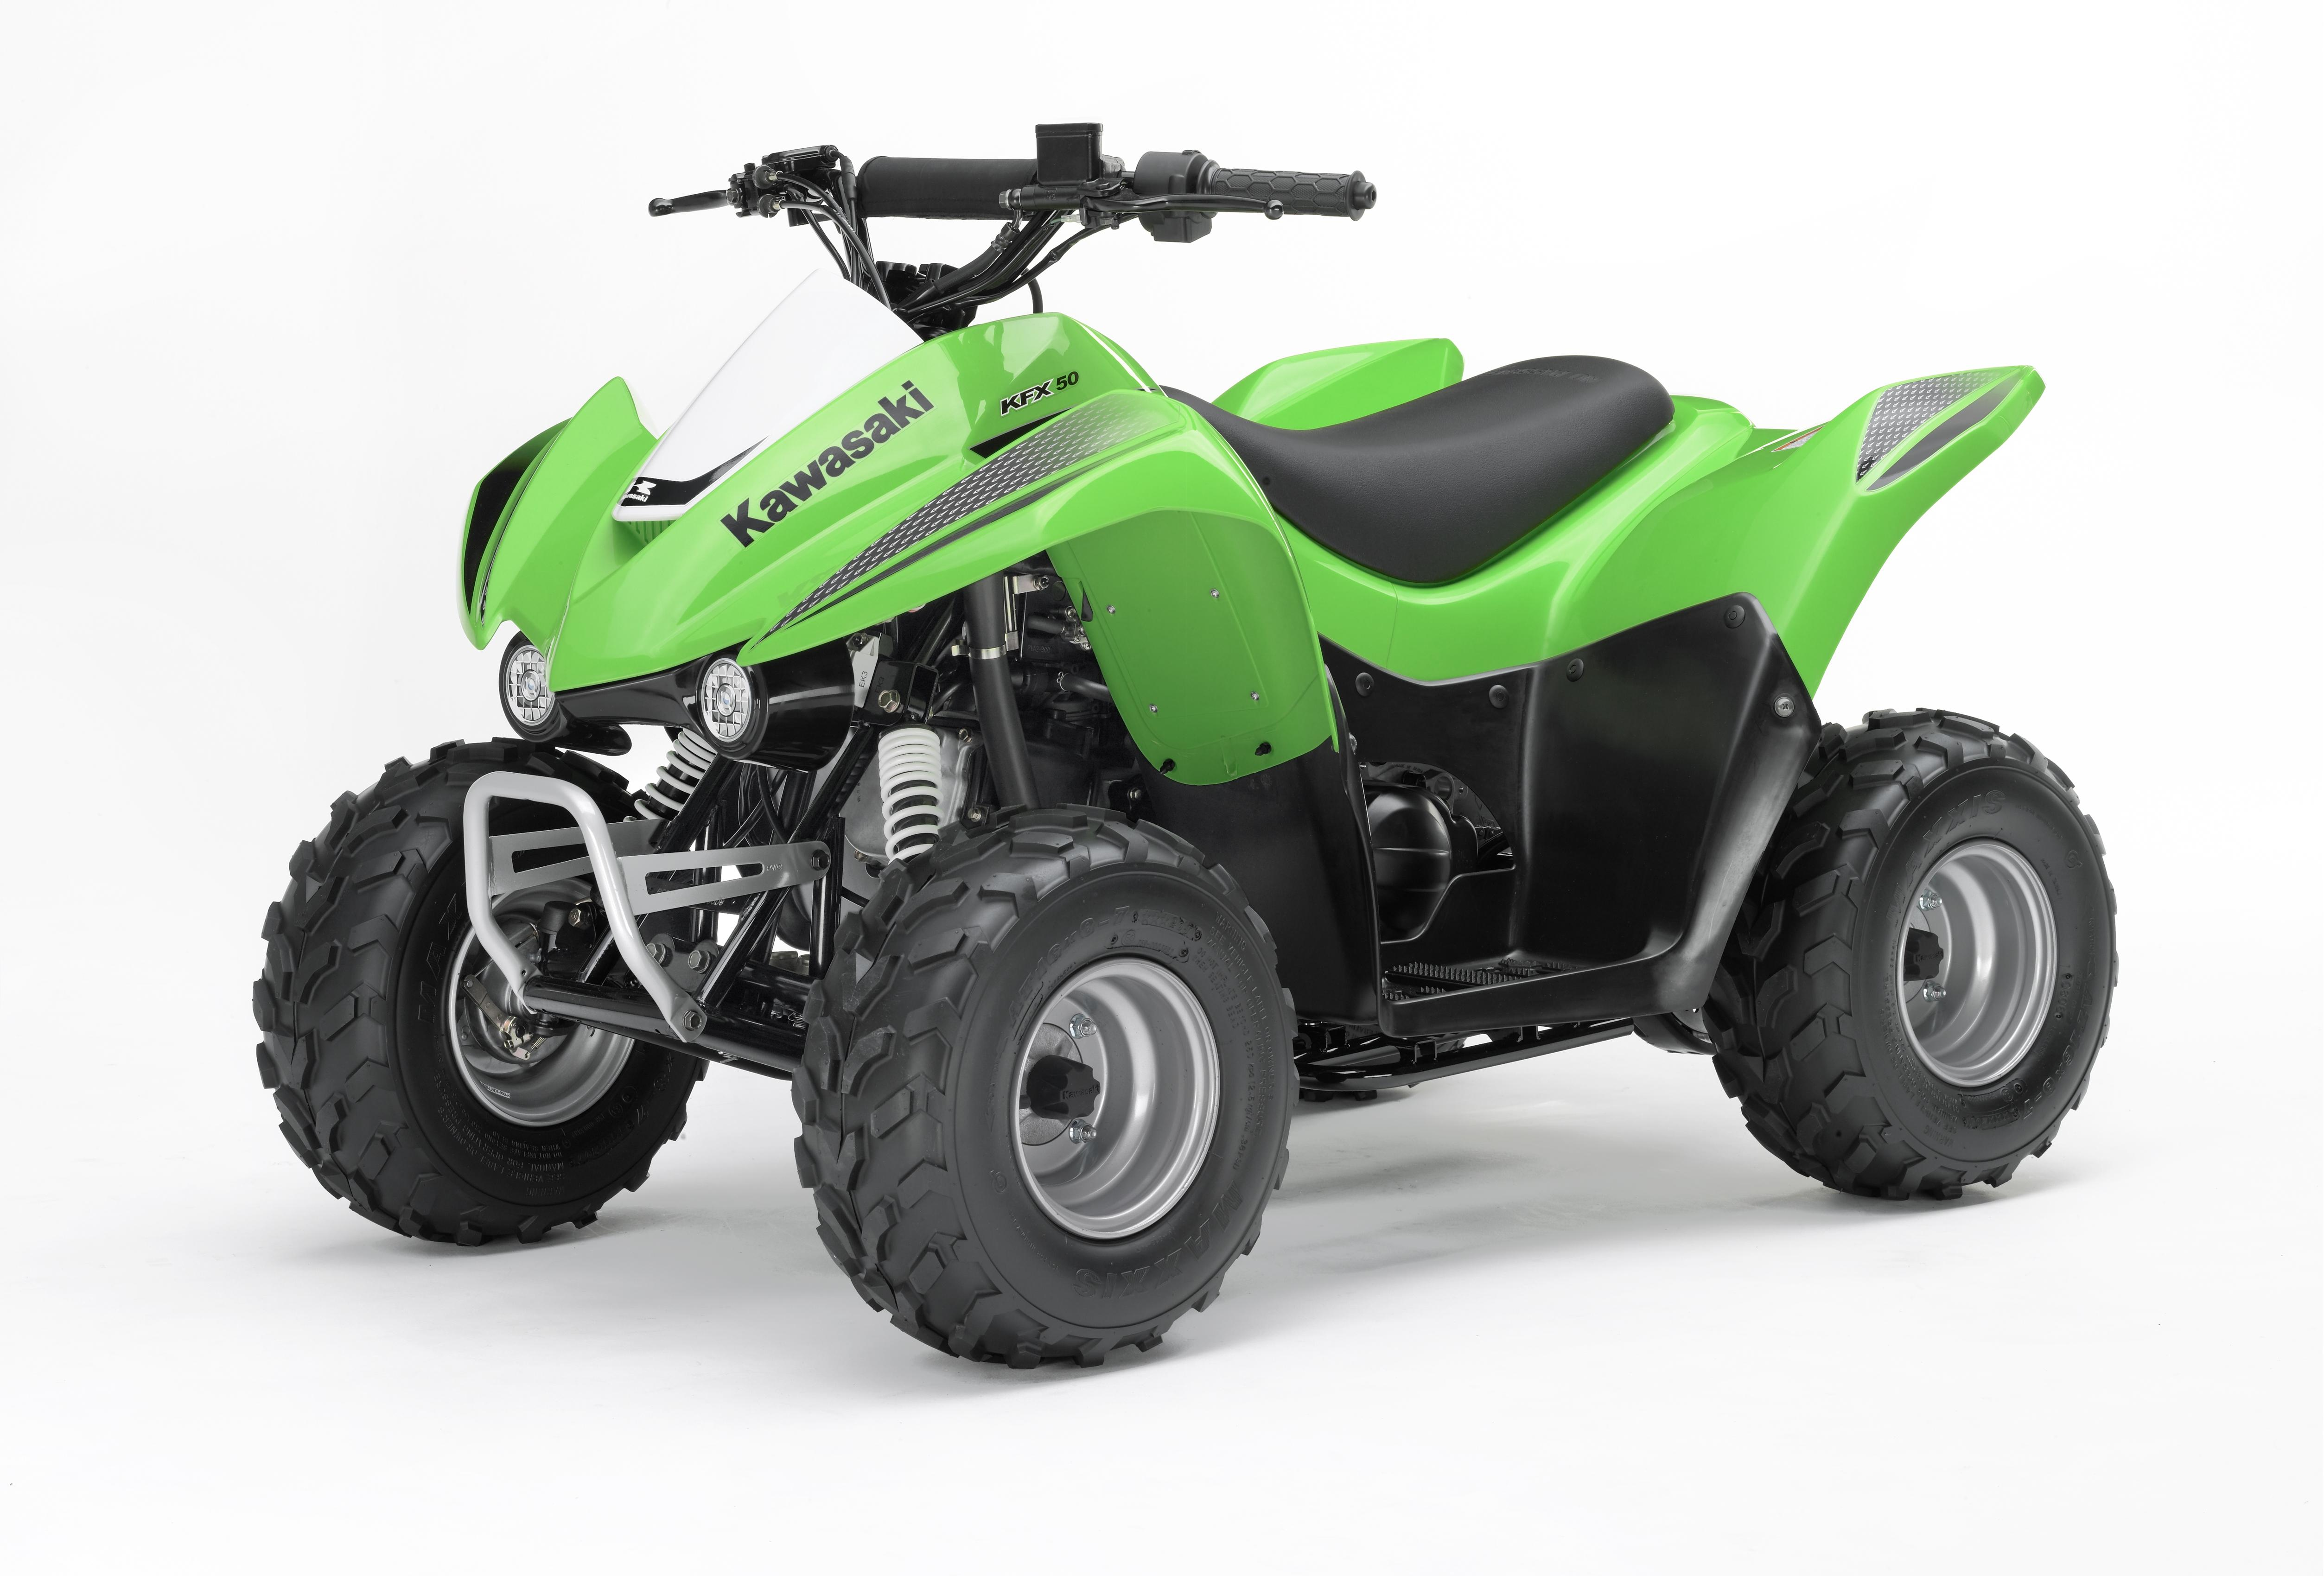 2006 Kawasaki KFX50 | Top Speed. »